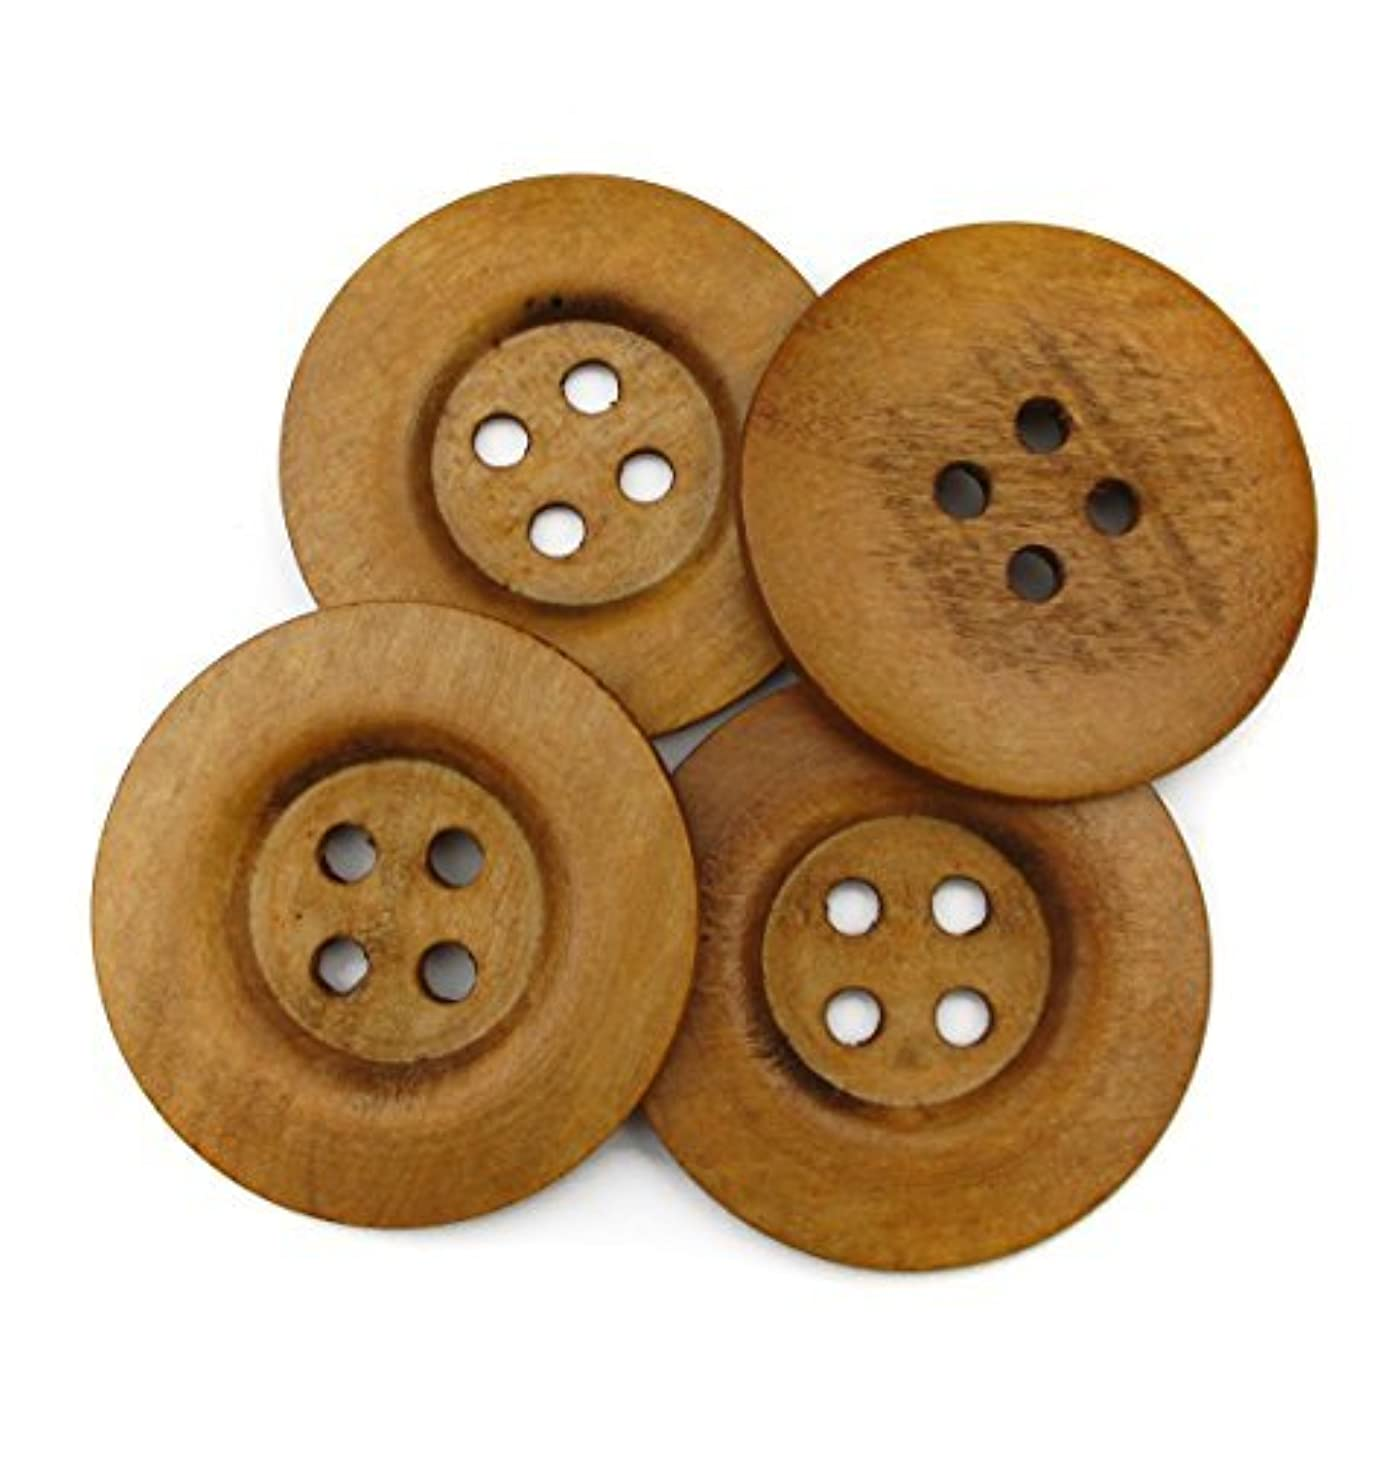 """ALL in ONE 20pcs Light Brown Large 4 Hole Sewing Wood Buttons with Wide Edge 50mm(2"""") (Light Brown Wide Edge-20pcs)"""